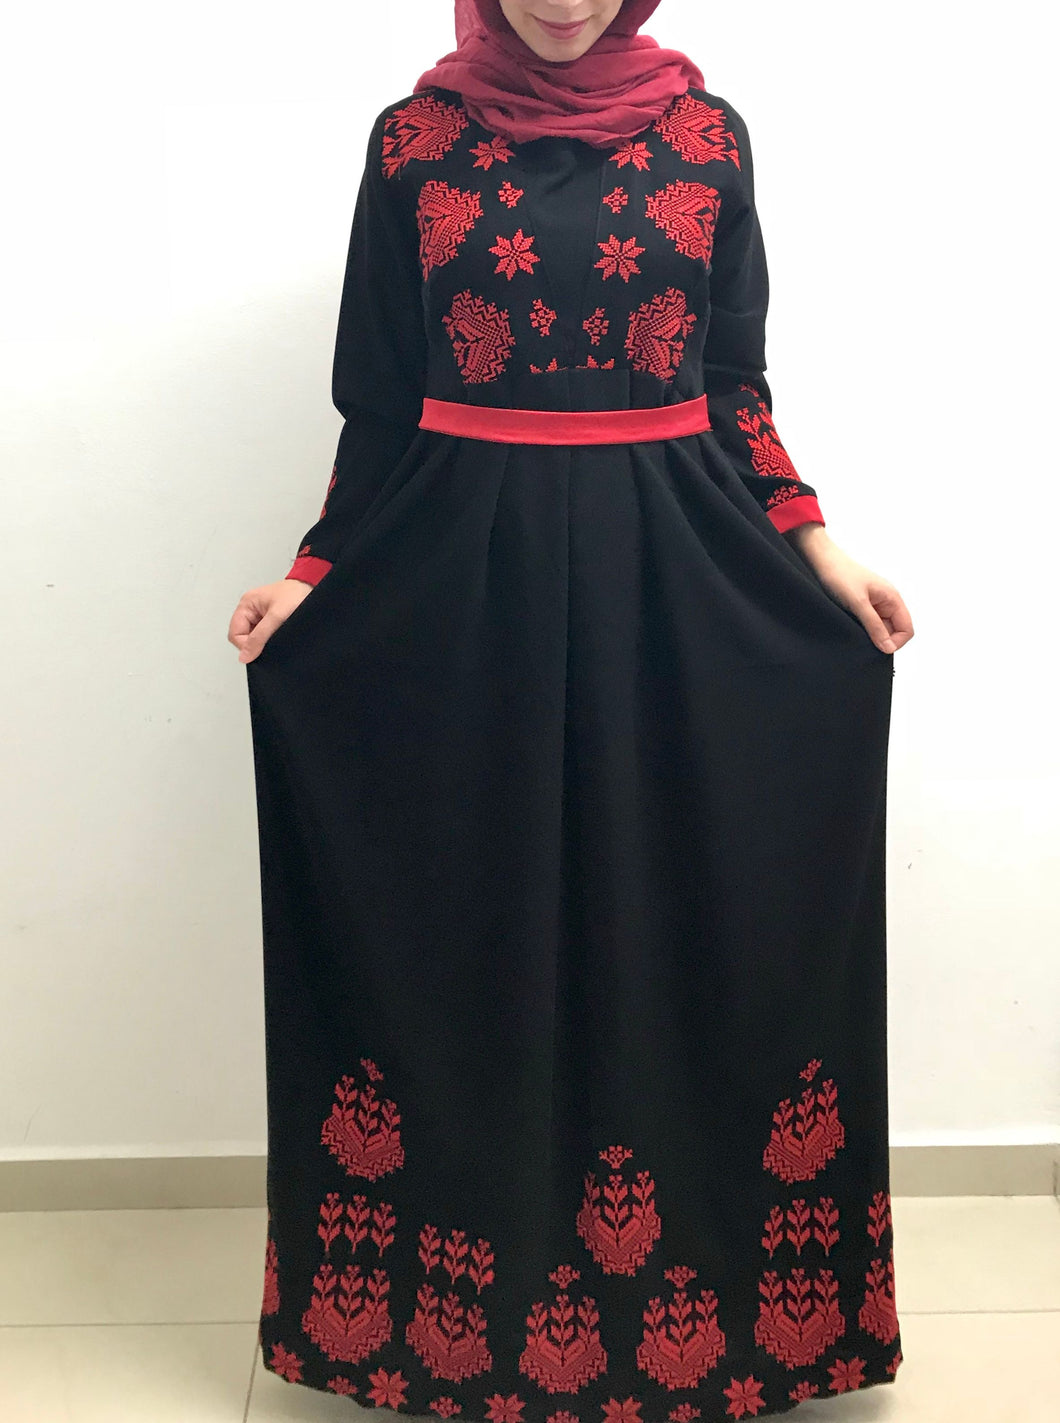 Black embroidered dress with stylish red embroidery - Falastini Brand